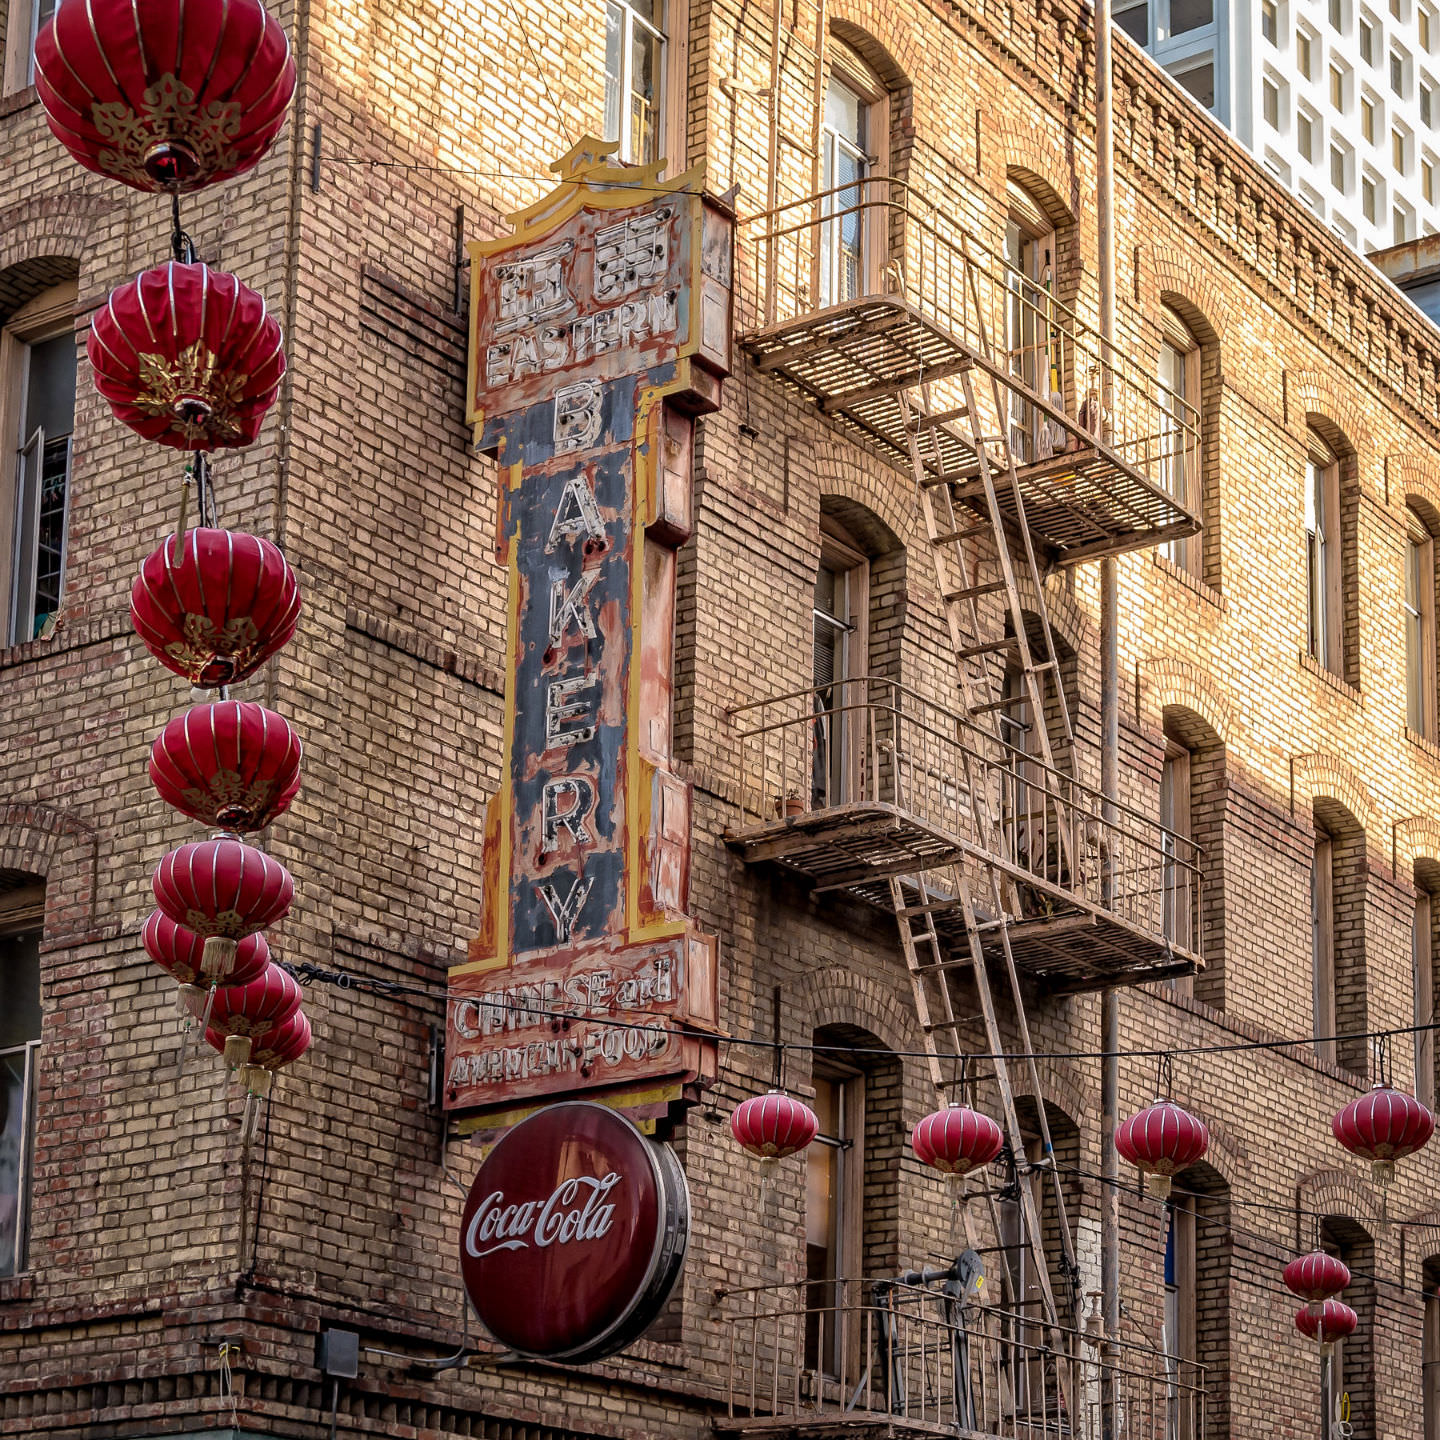 The decaying sign of the Eastern Bakery in San Francisco's Chinatown.